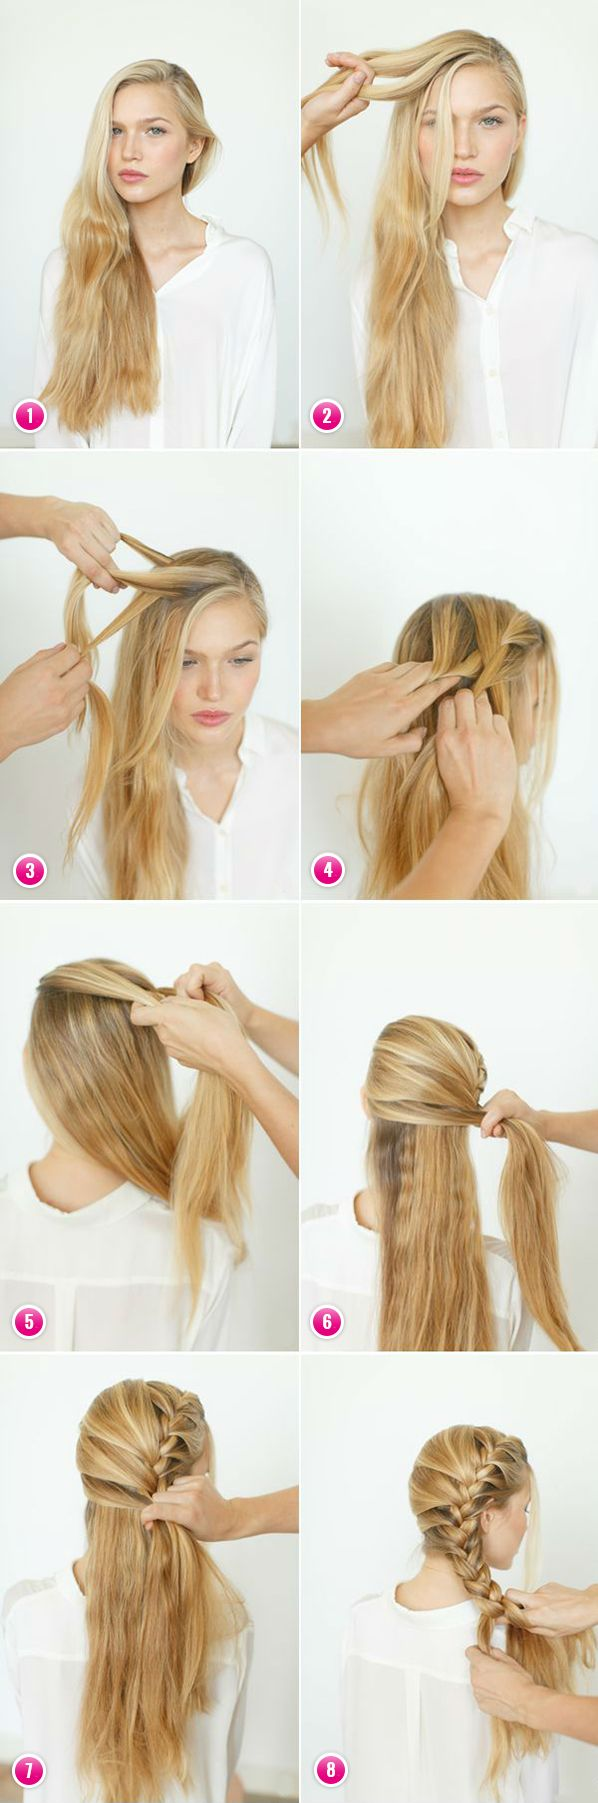 Creative Hairstyles For Long Hair Her Beauty Cute Braided Hairstyles Hair Styles Long Hair Styles